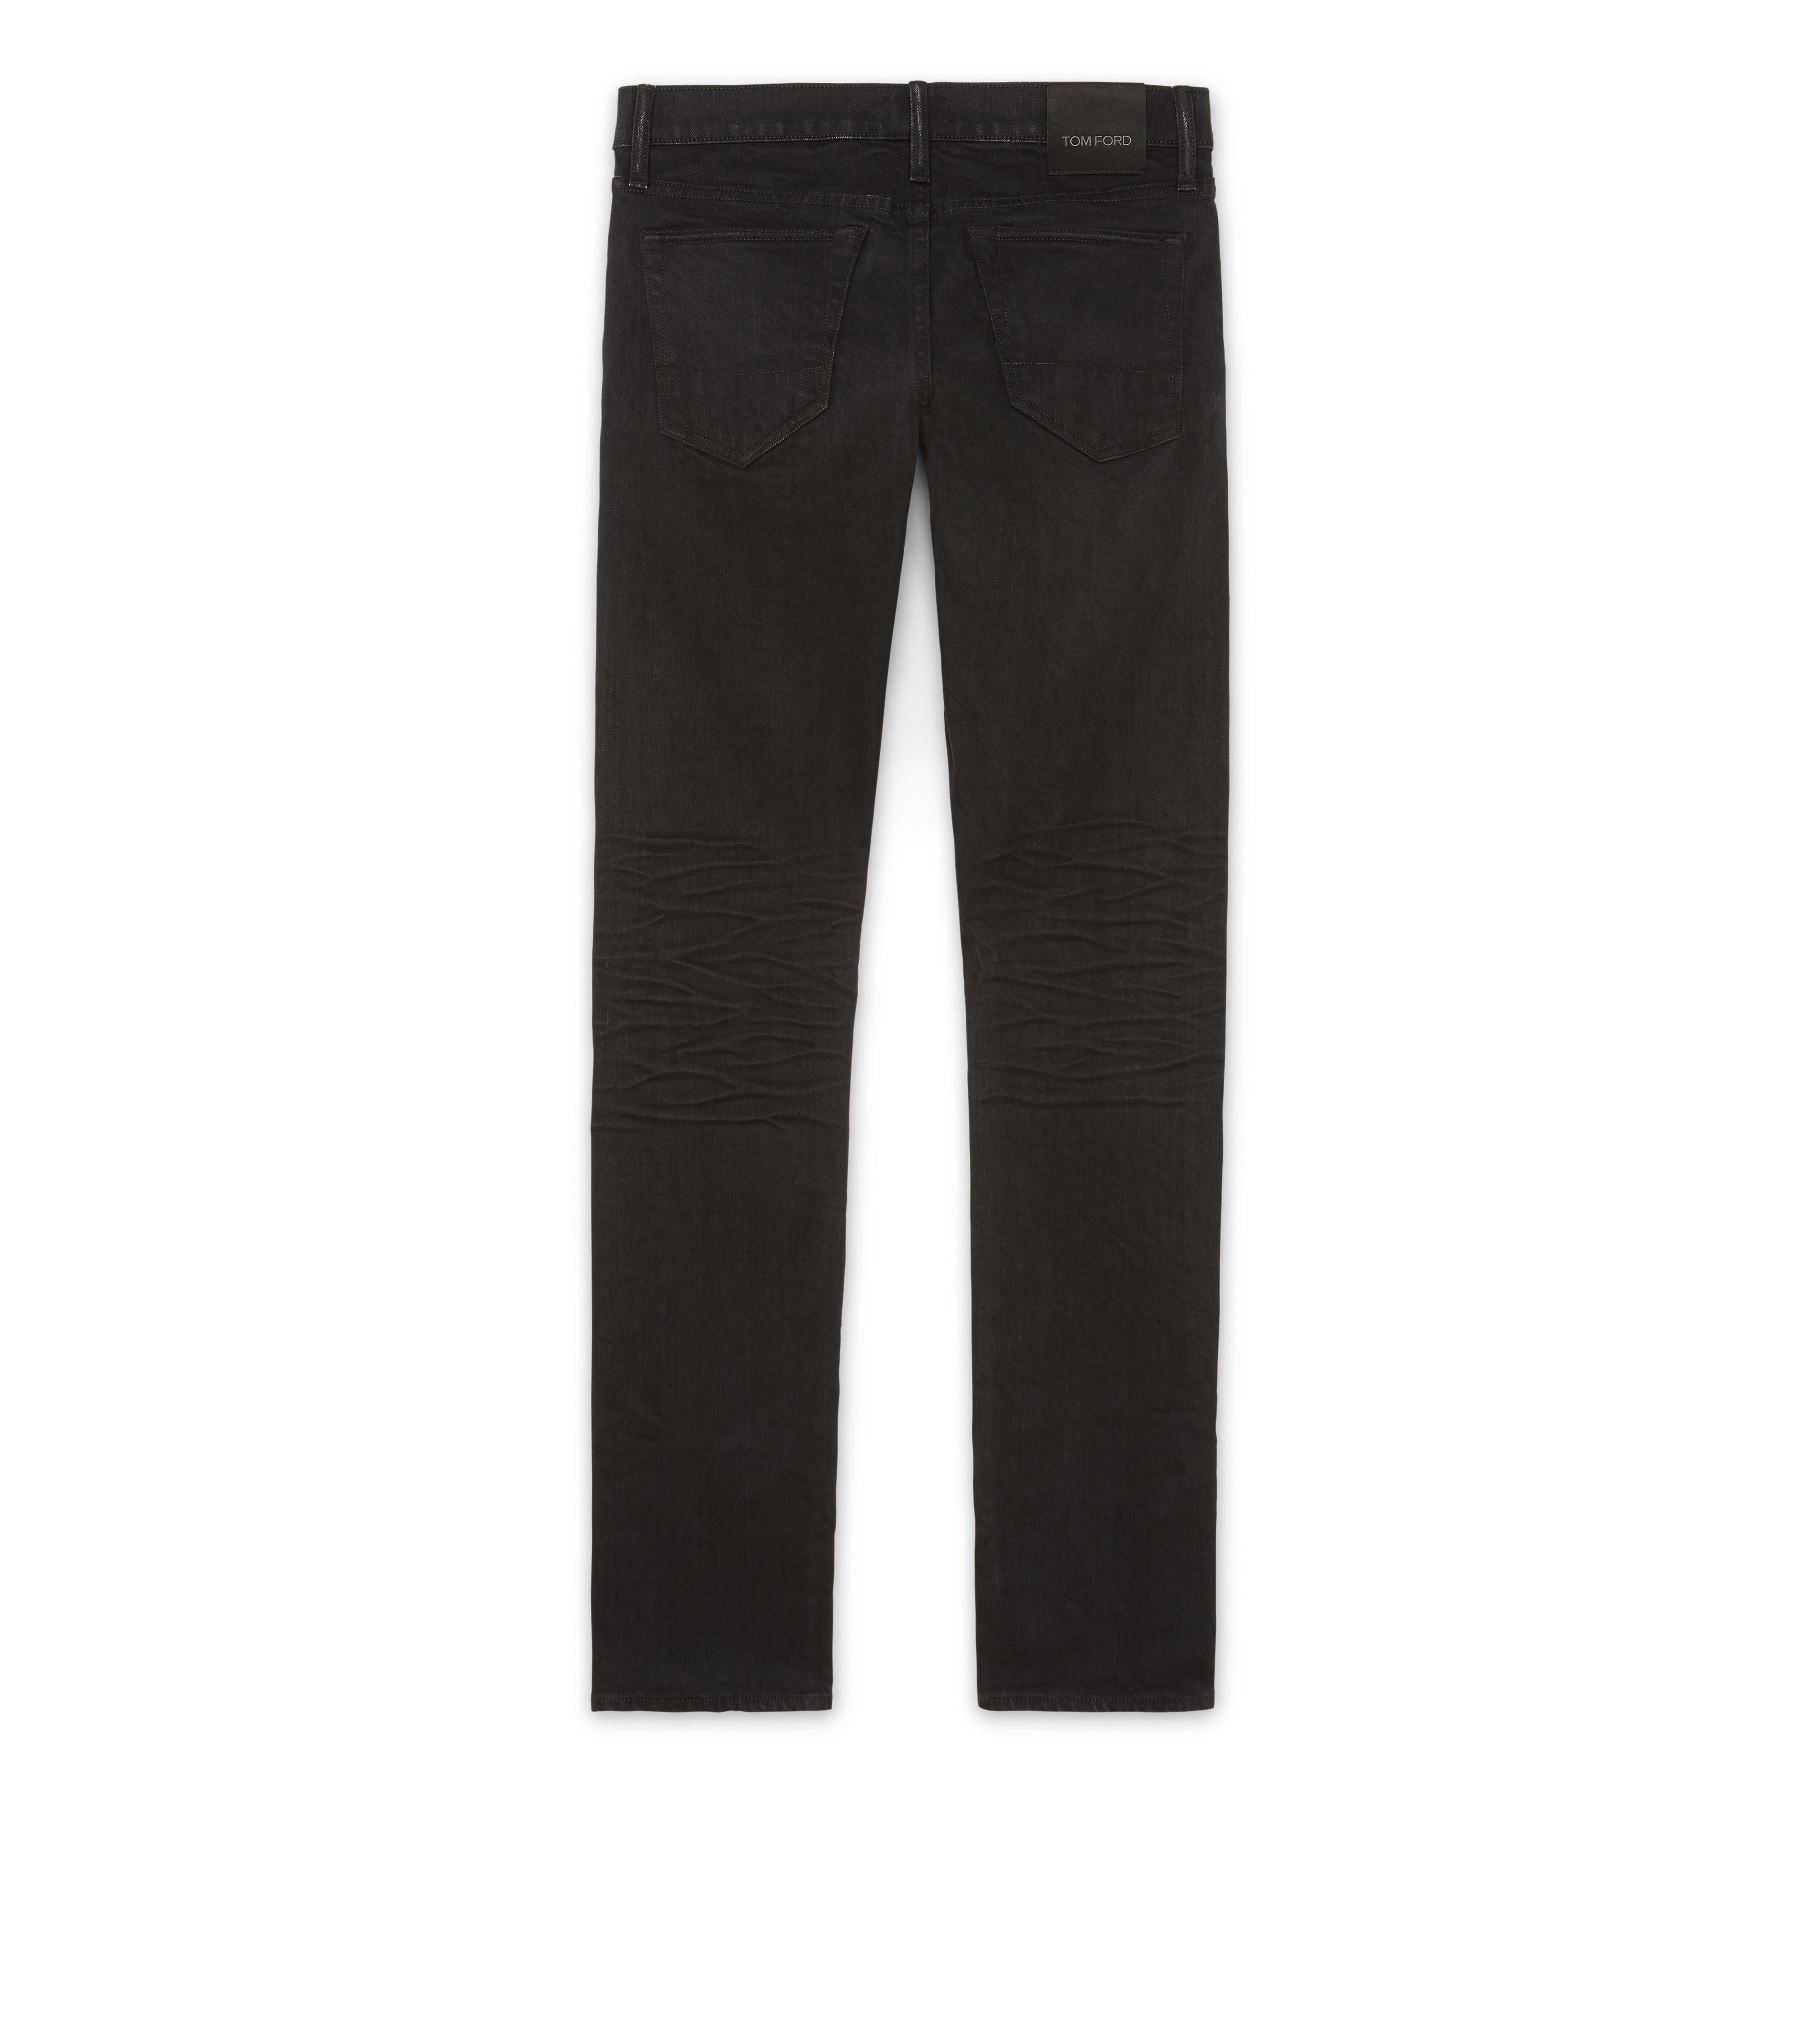 SLIM FIT BLACK JEANS B thumbnail